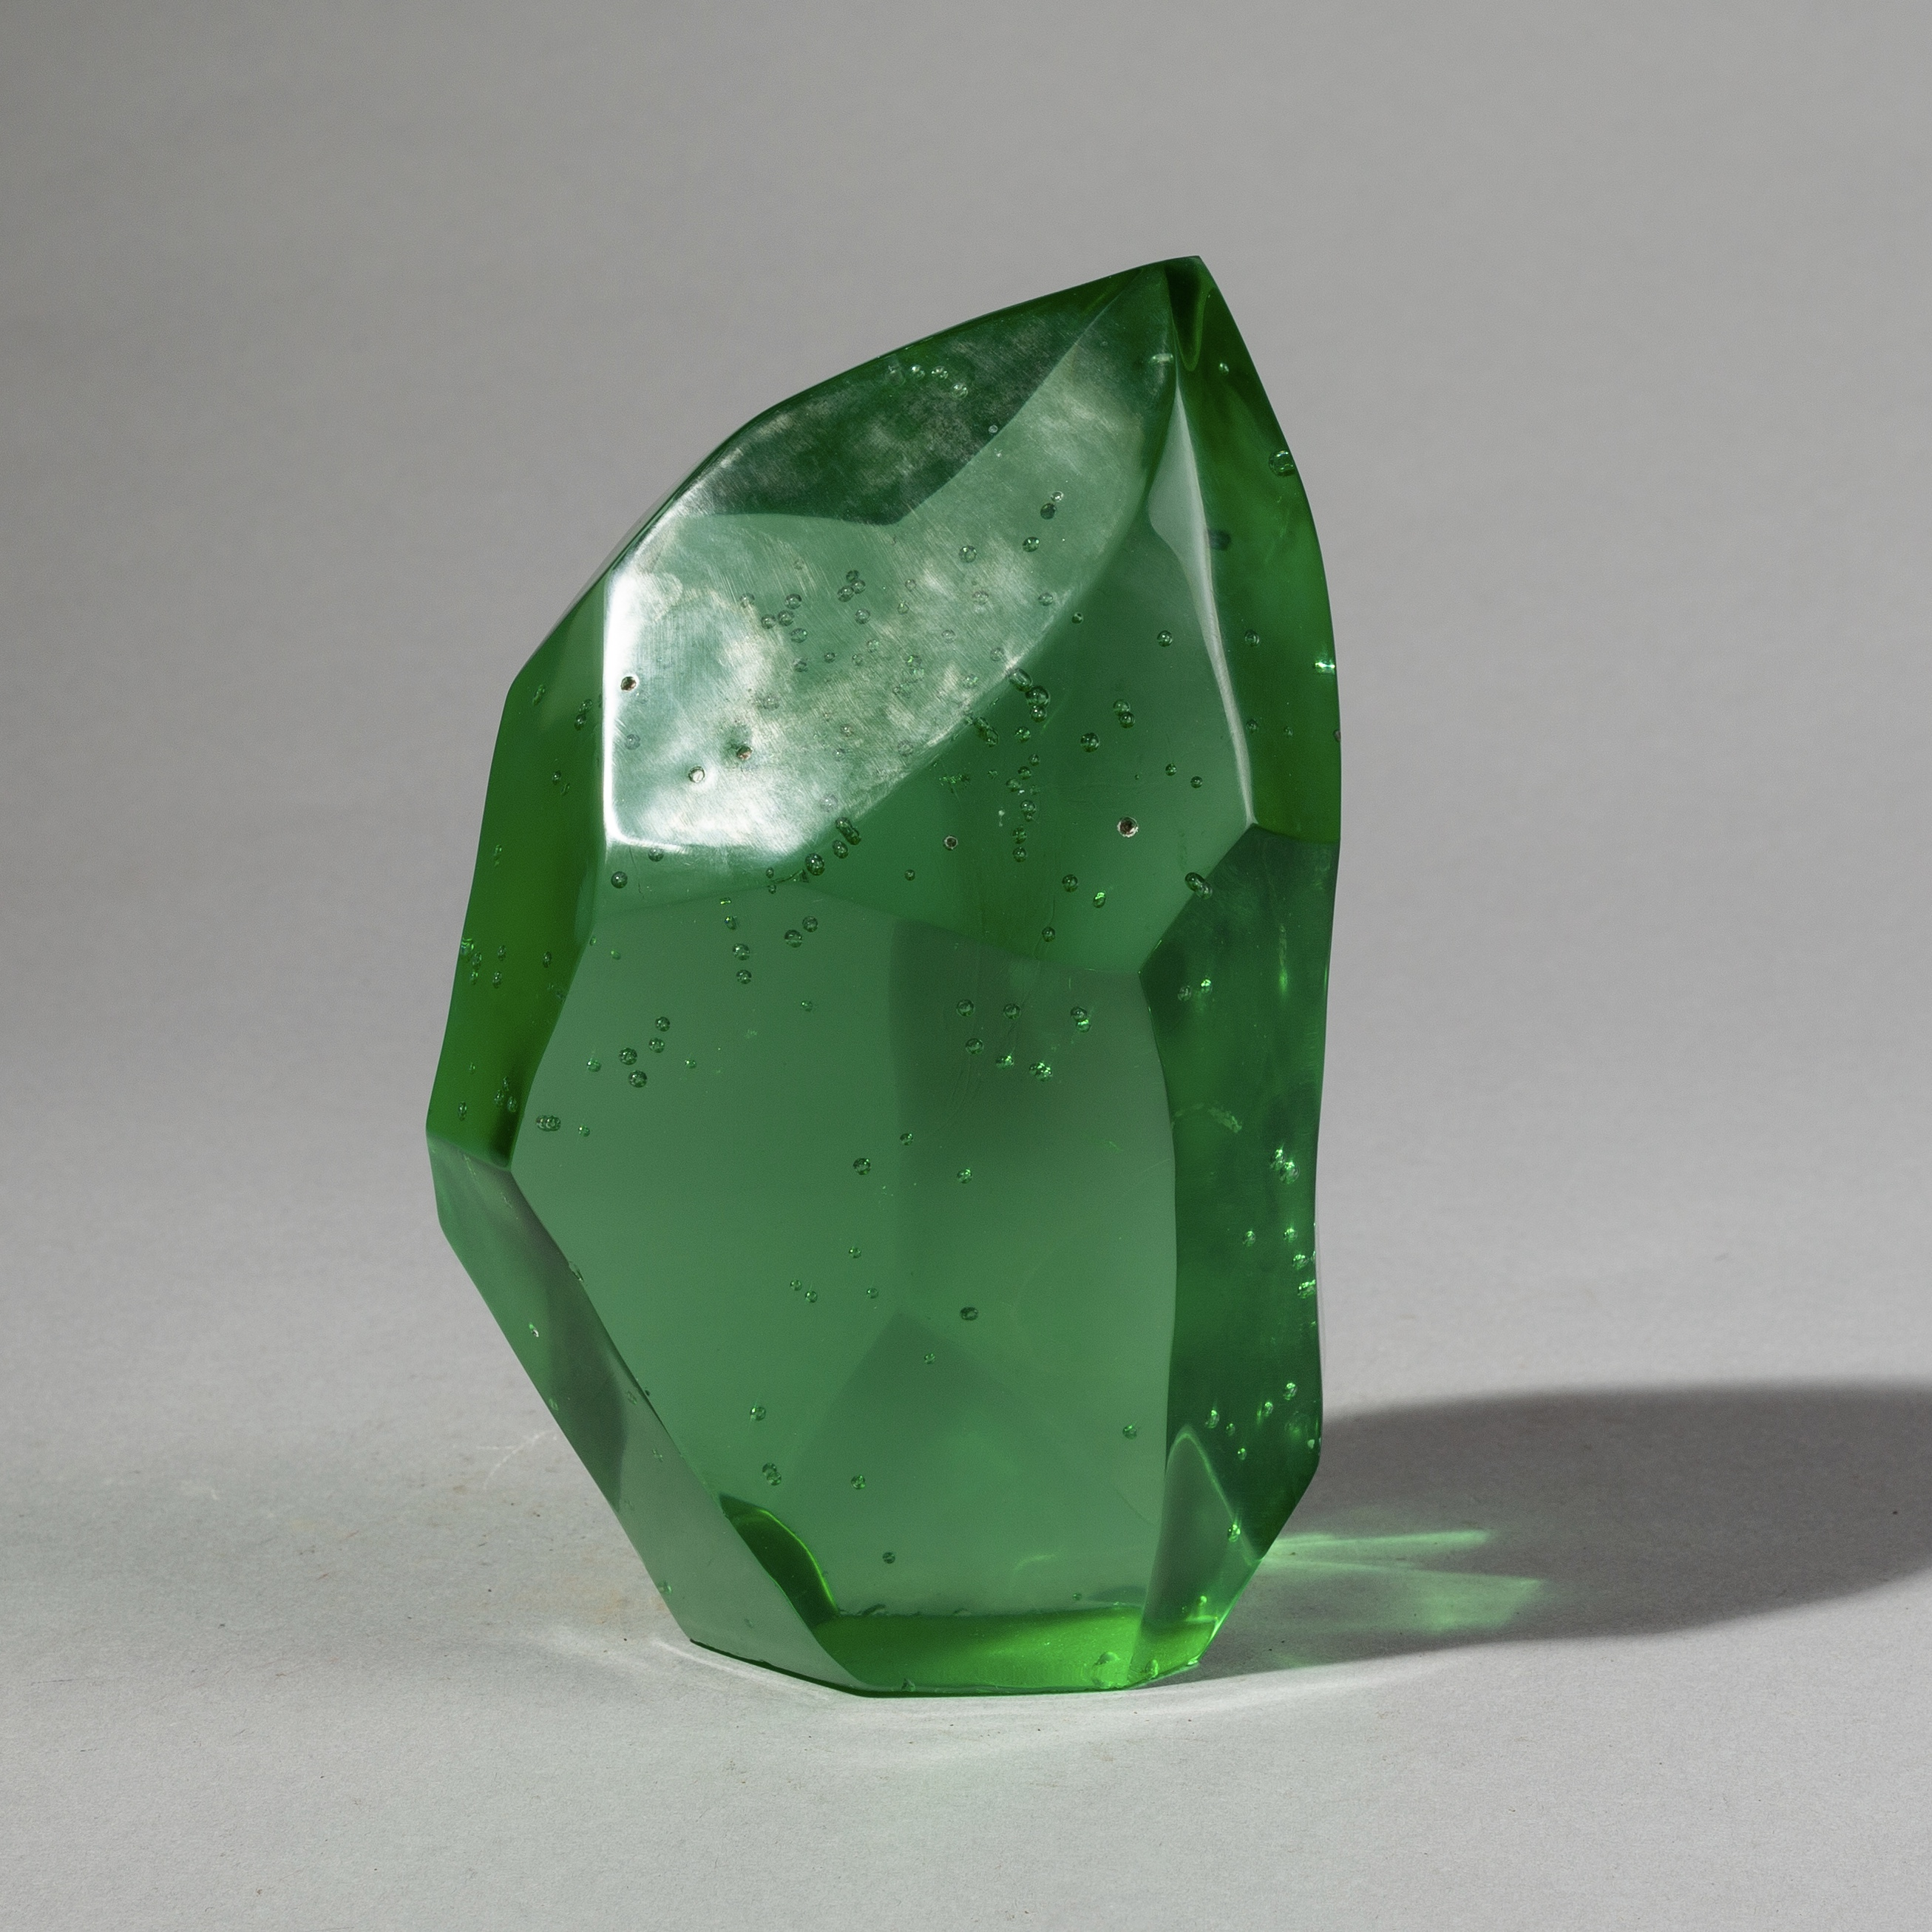 A BRILLIANT EMERALD NATURAL GLASS FORM FROM MADAGASCAR ( No 2671 )